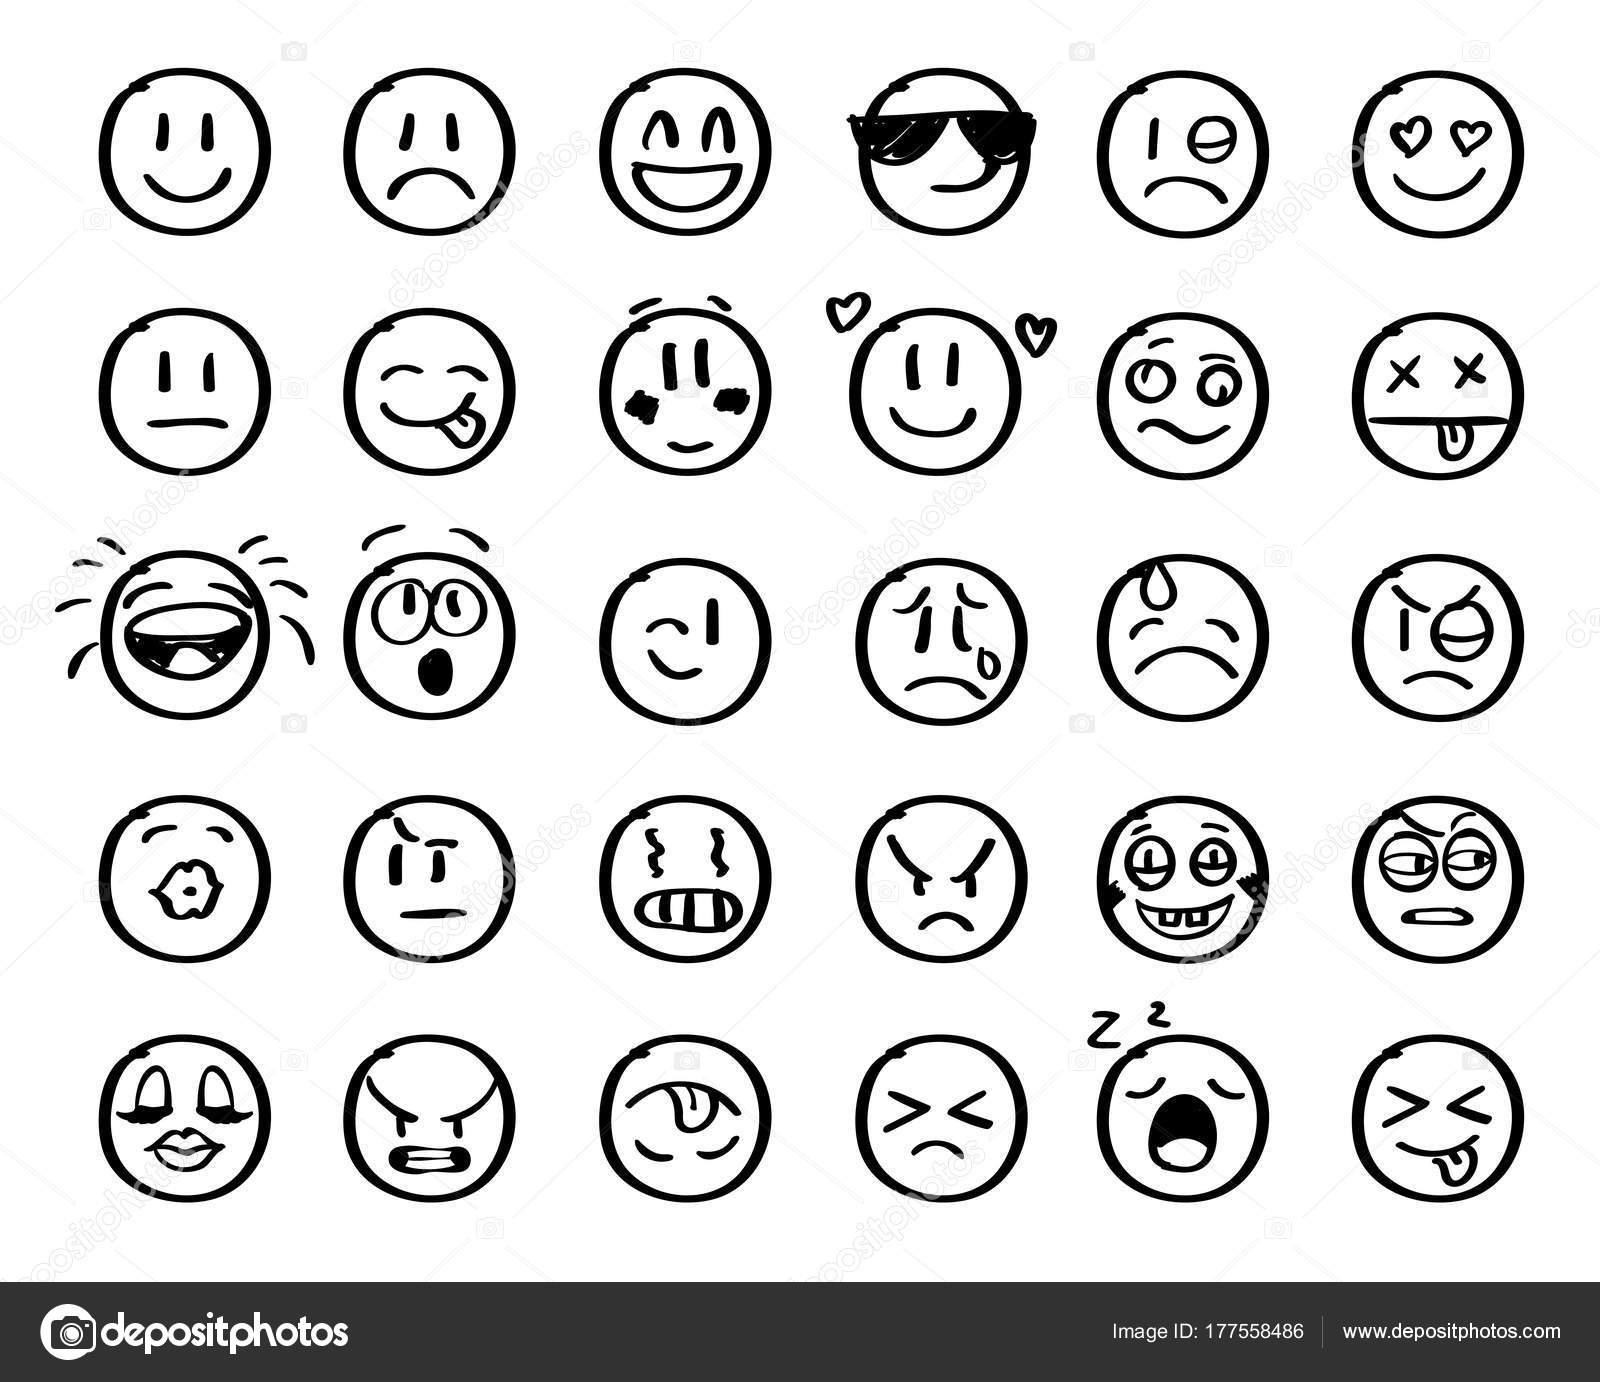 Modern Outline Style Emoji Icons Collection Premium Quality Symbols